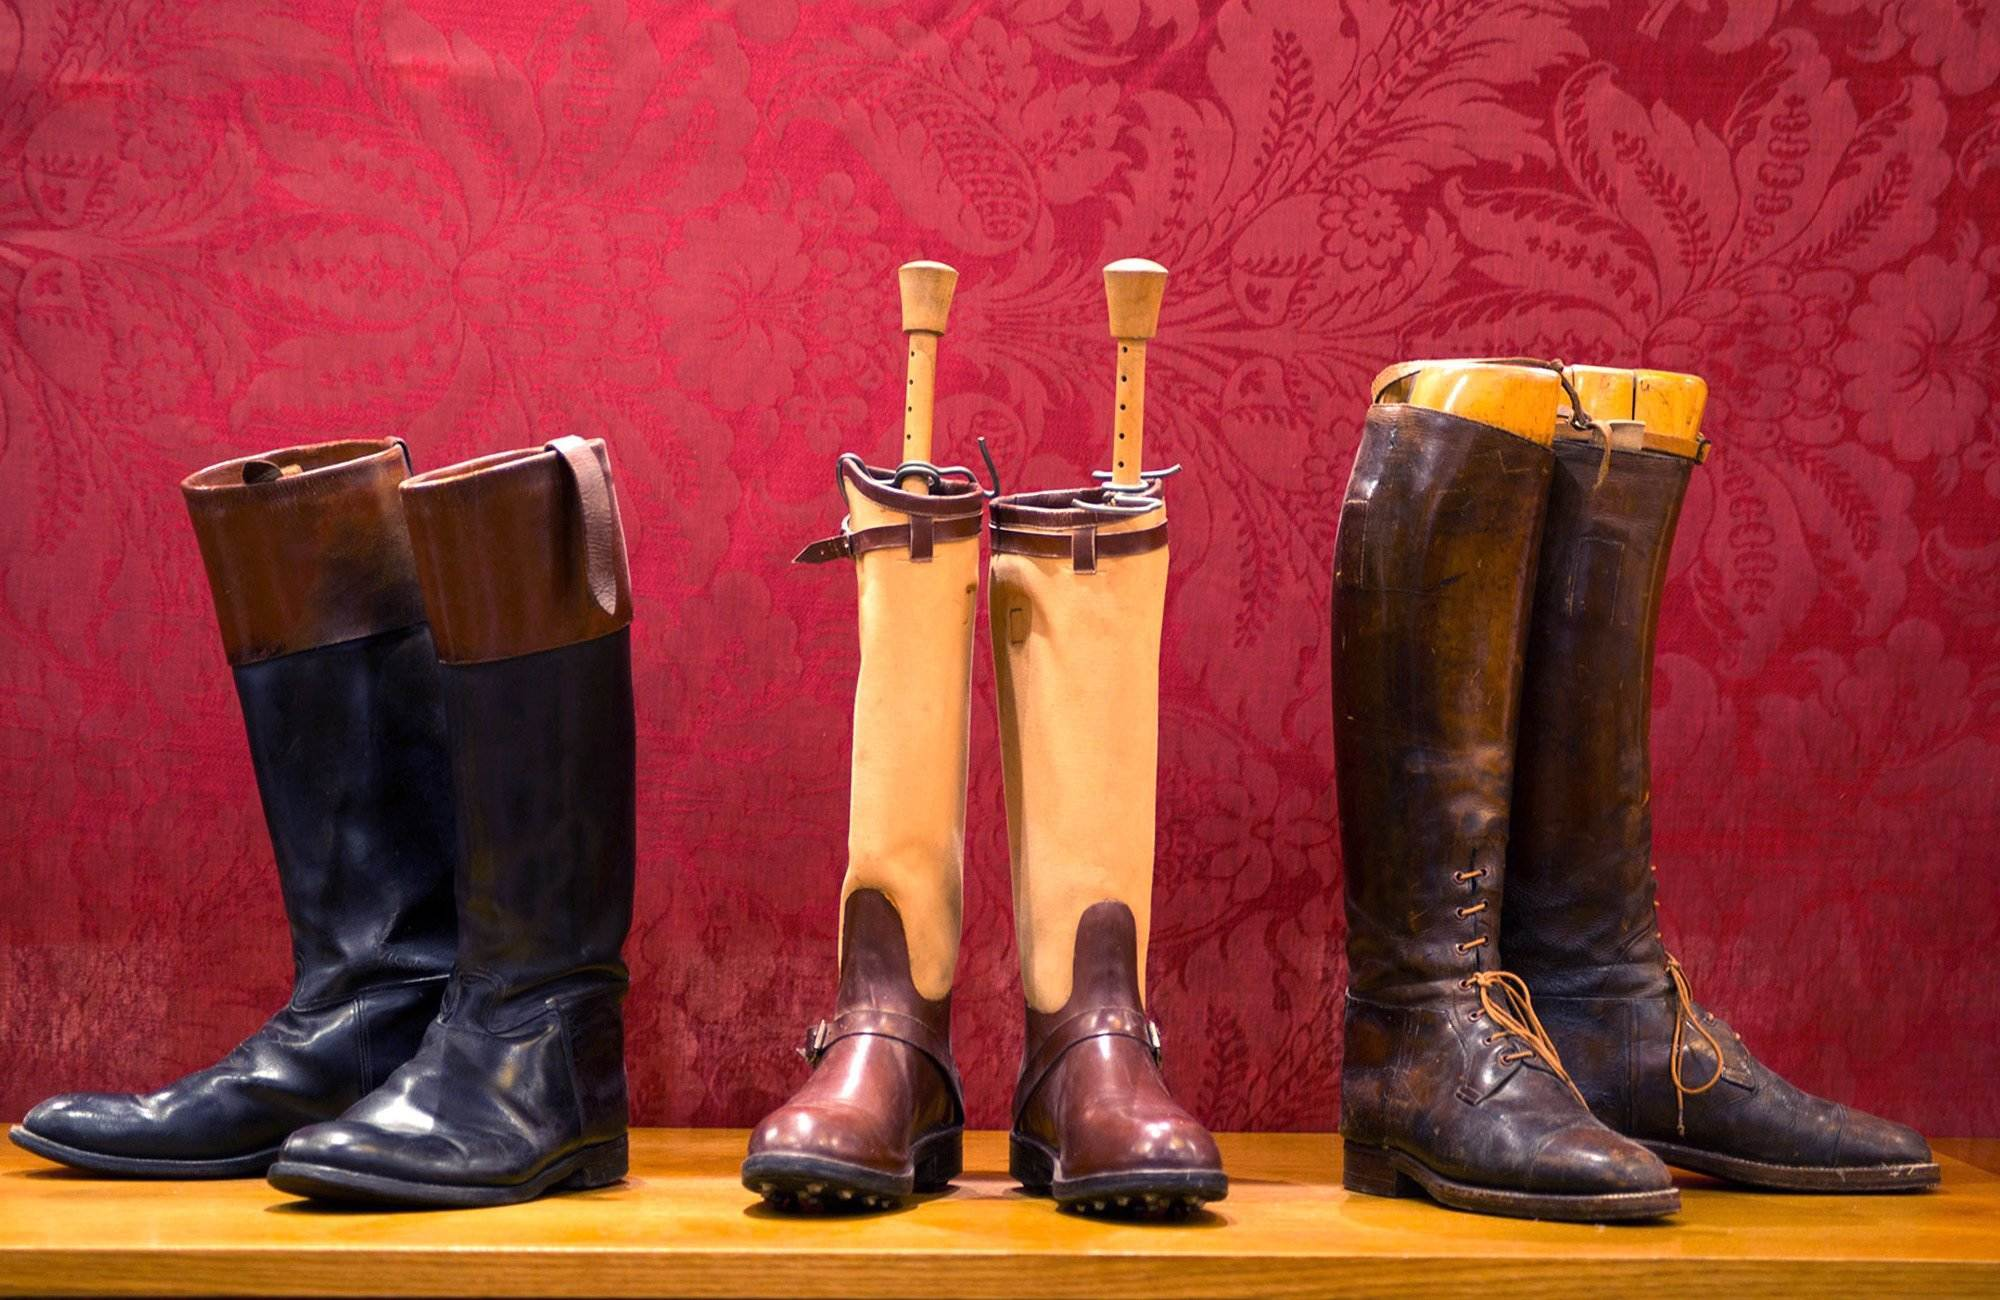 Original boots made by Cordings.